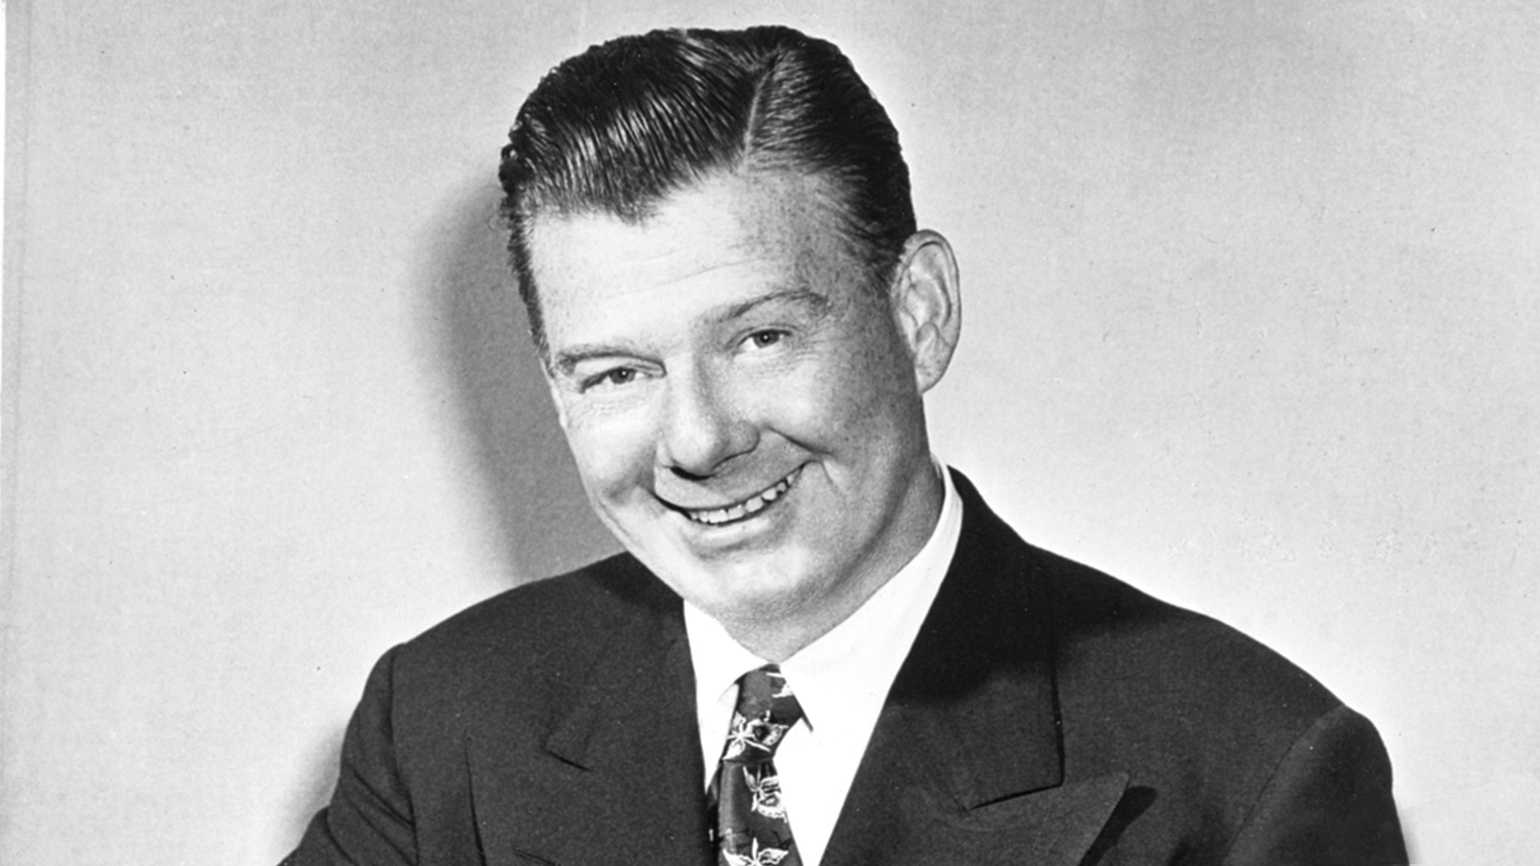 Entertainer Arthur Godfrey